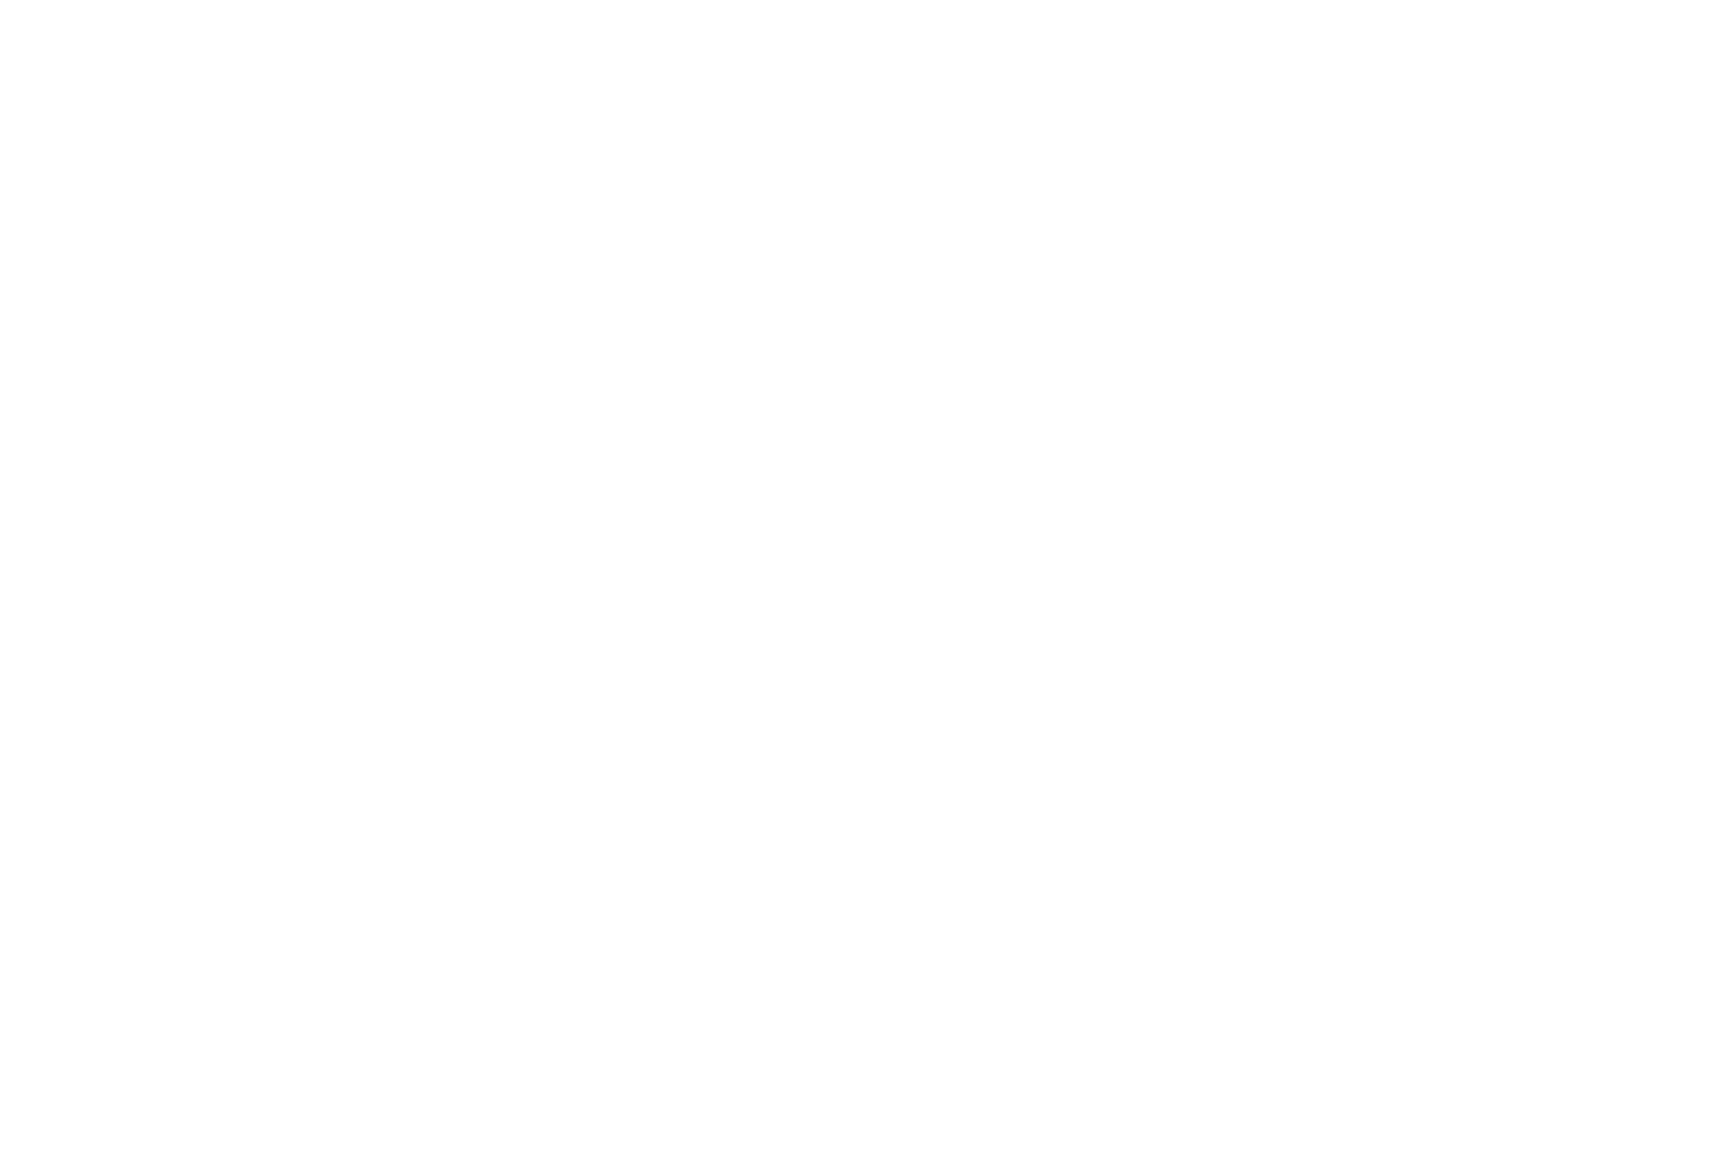 OFFICIAL SELECTION - Direct Monthly Online Film Festival 2017 - Worth It.png